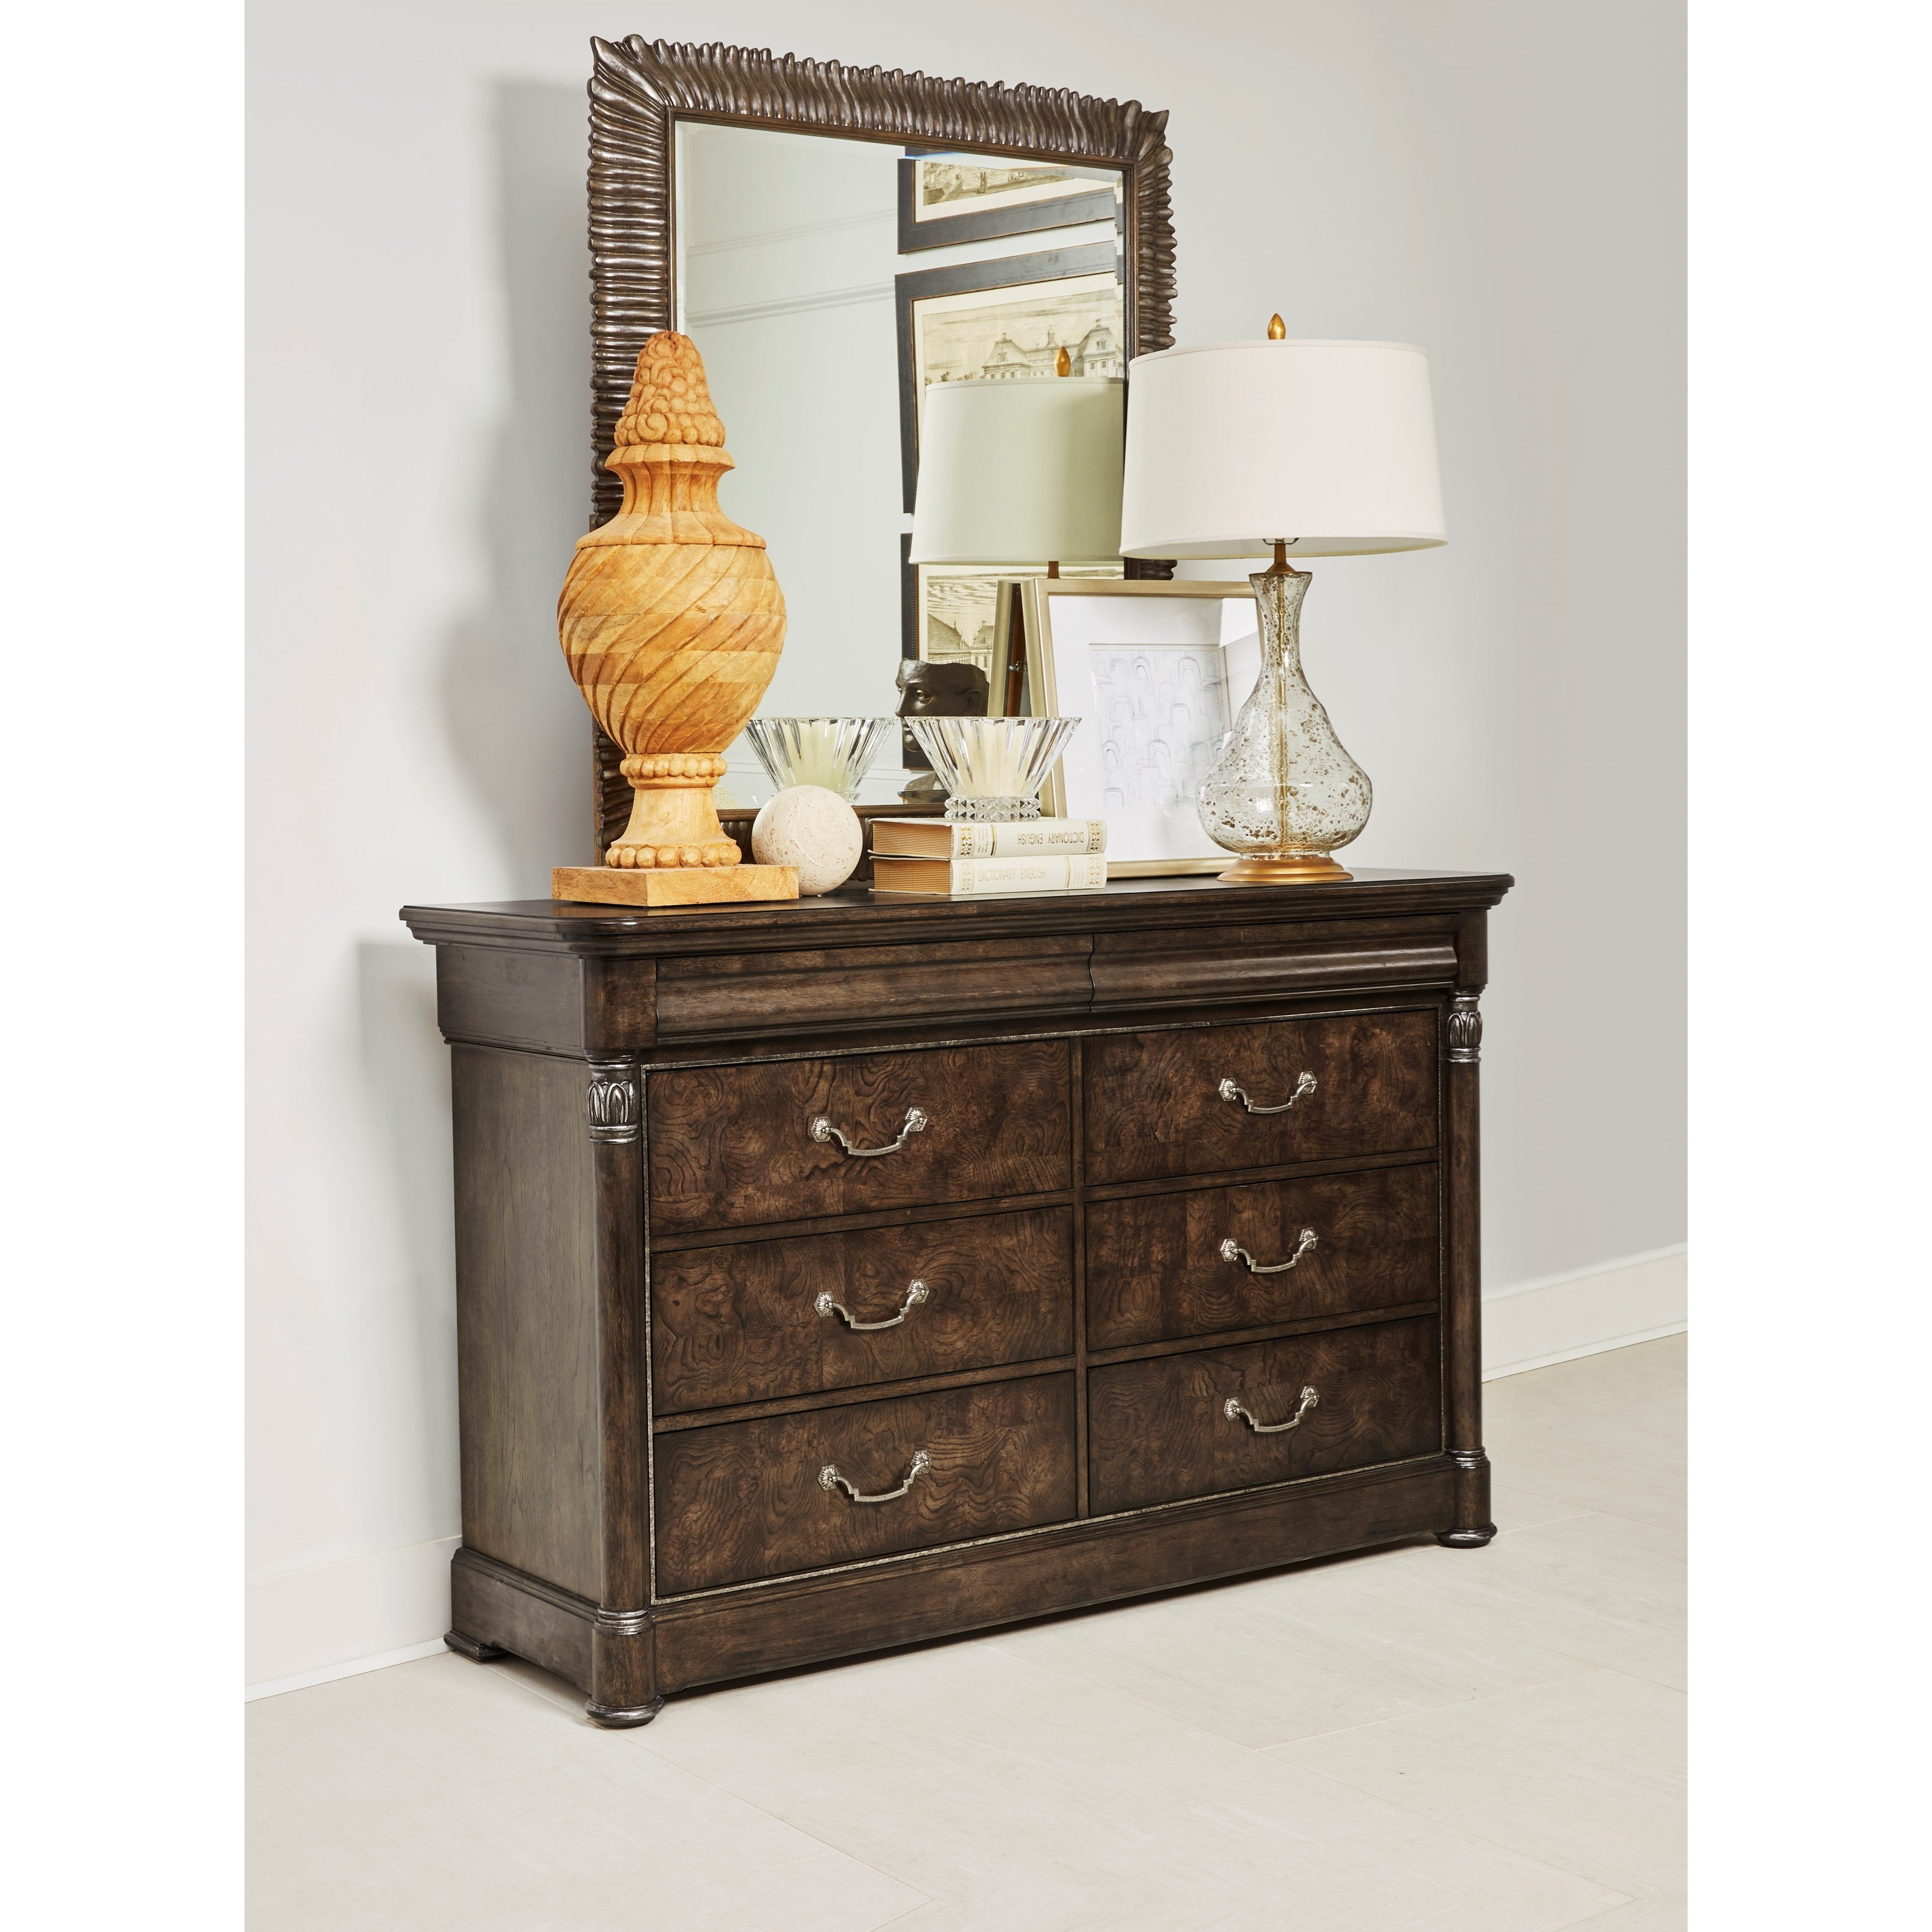 Landmark Dresser and Mirror Combination by A.R.T. Furniture Inc at Home Collections Furniture